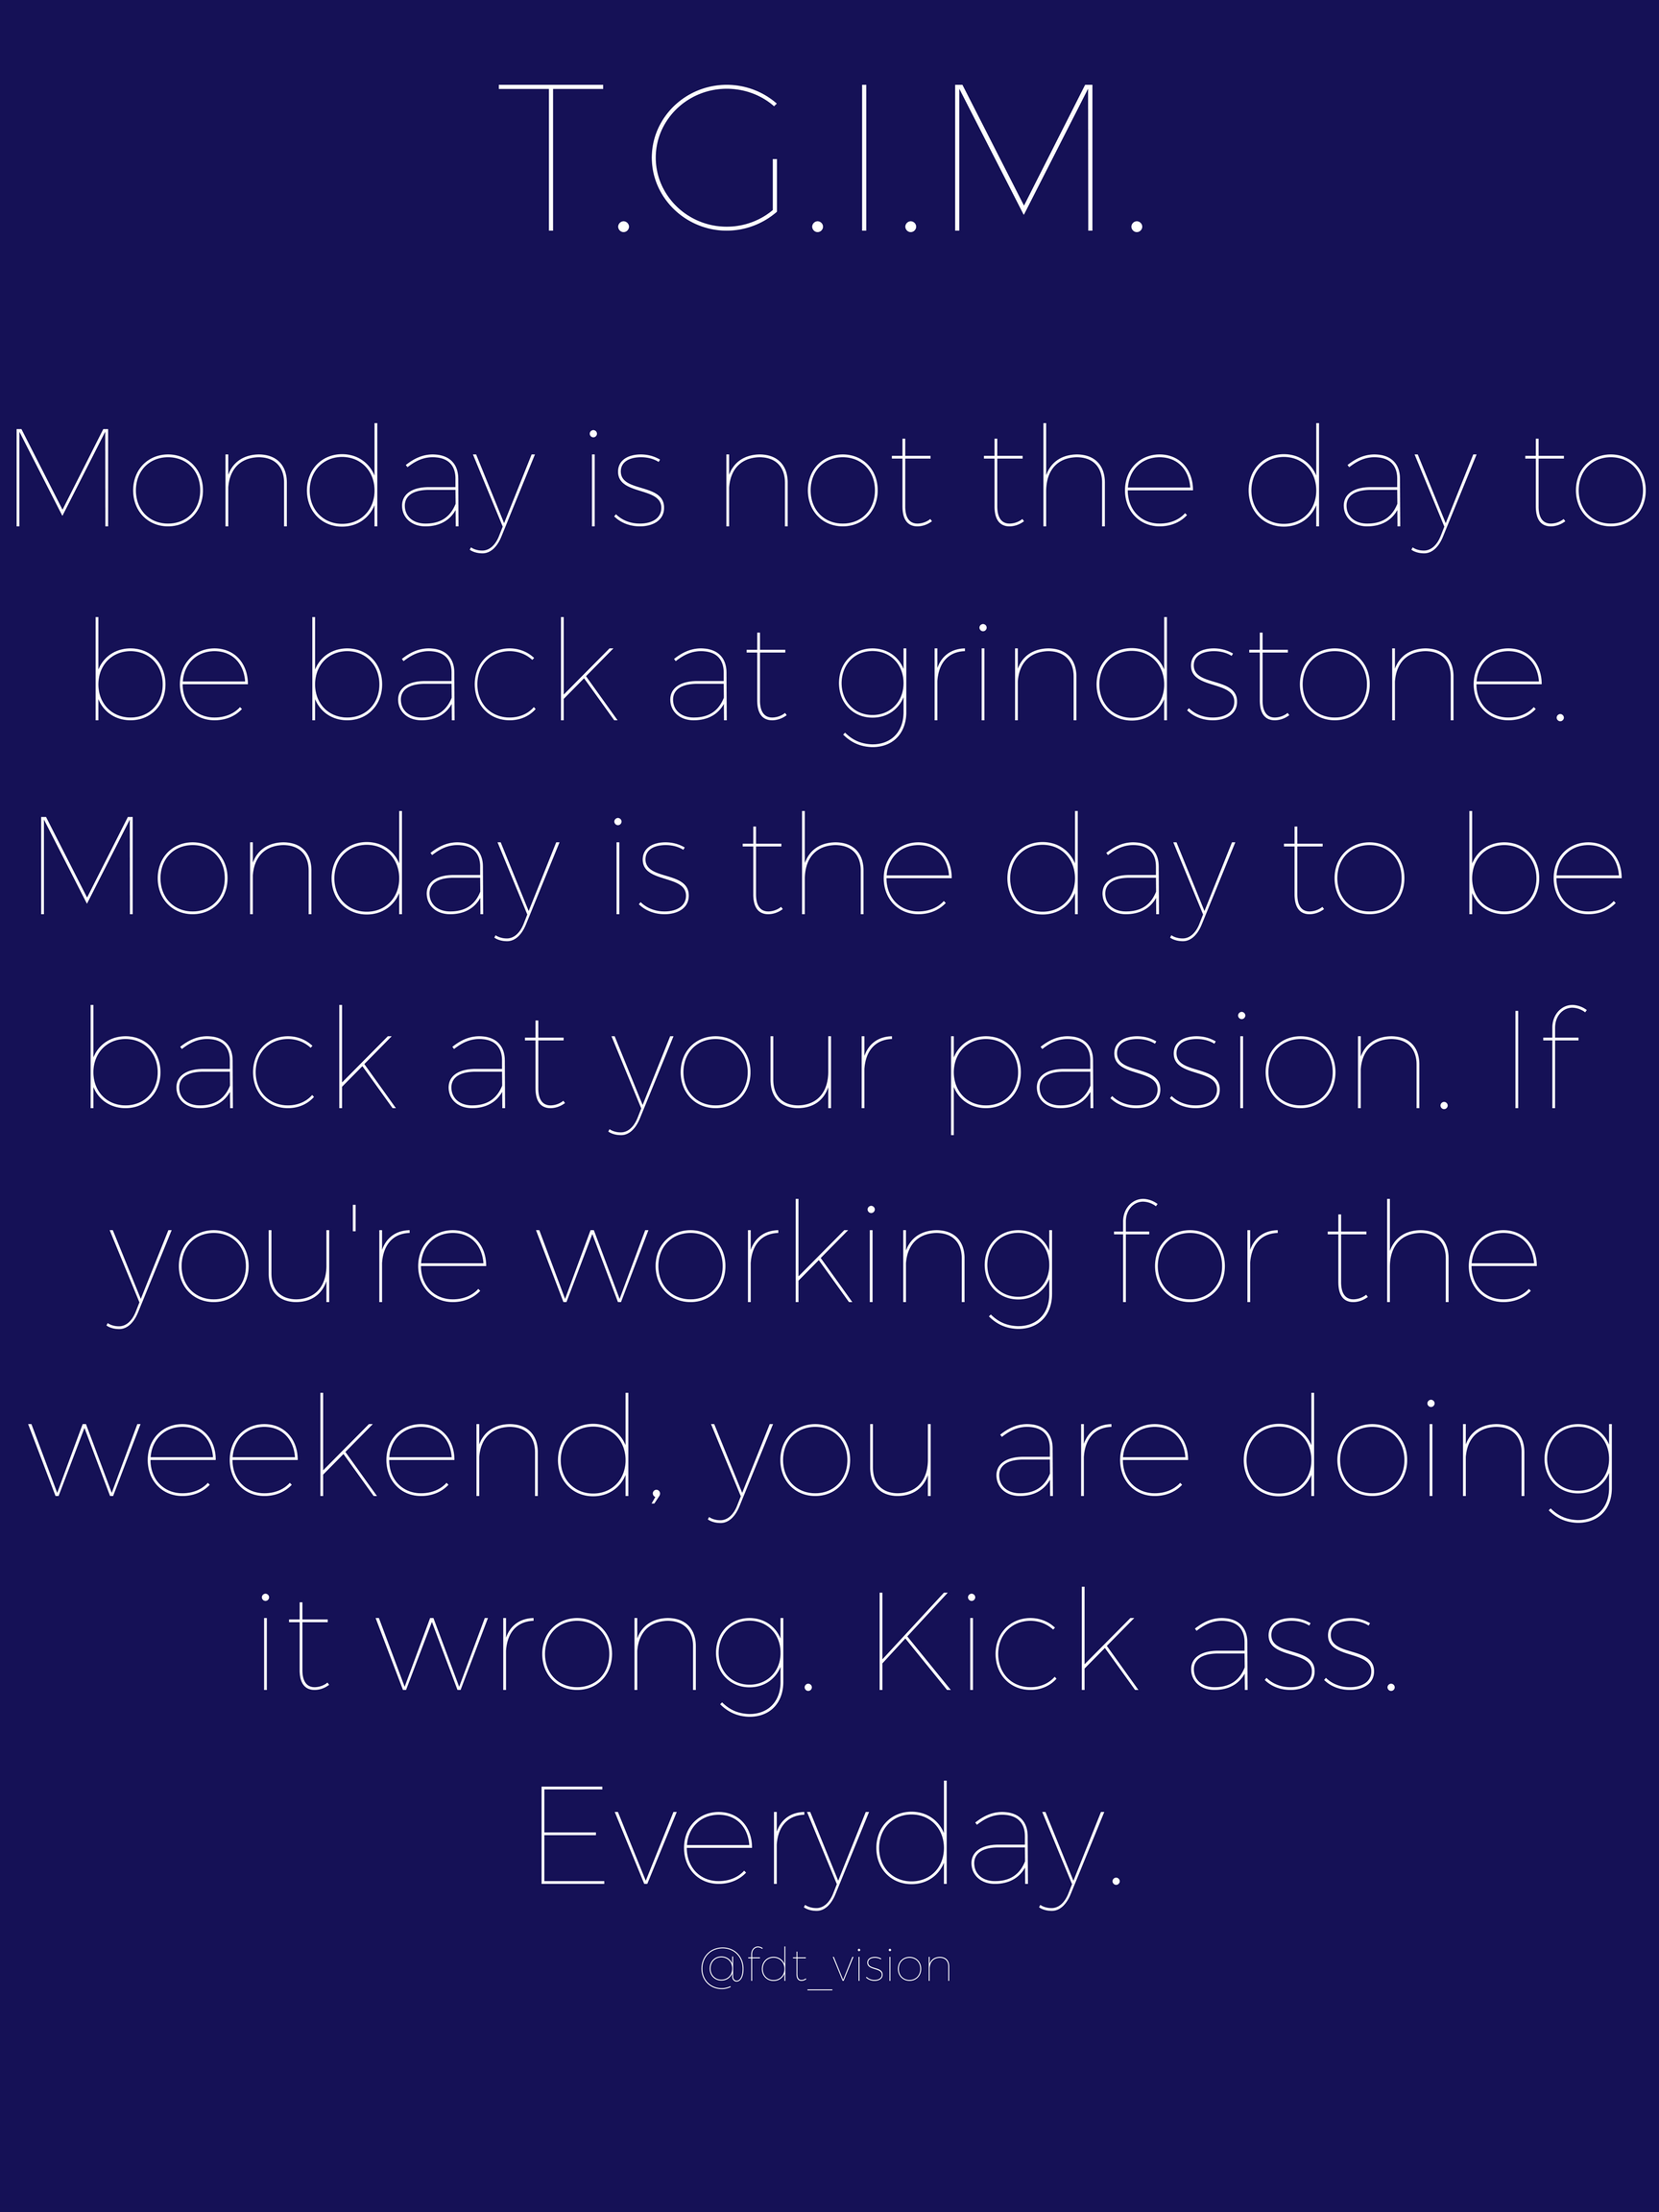 Let S Rock And Roll Monday Happymonday Mondayquotes Motivationalquotes Monday Quotes Entrepreneur Quotes Motivational Quotes